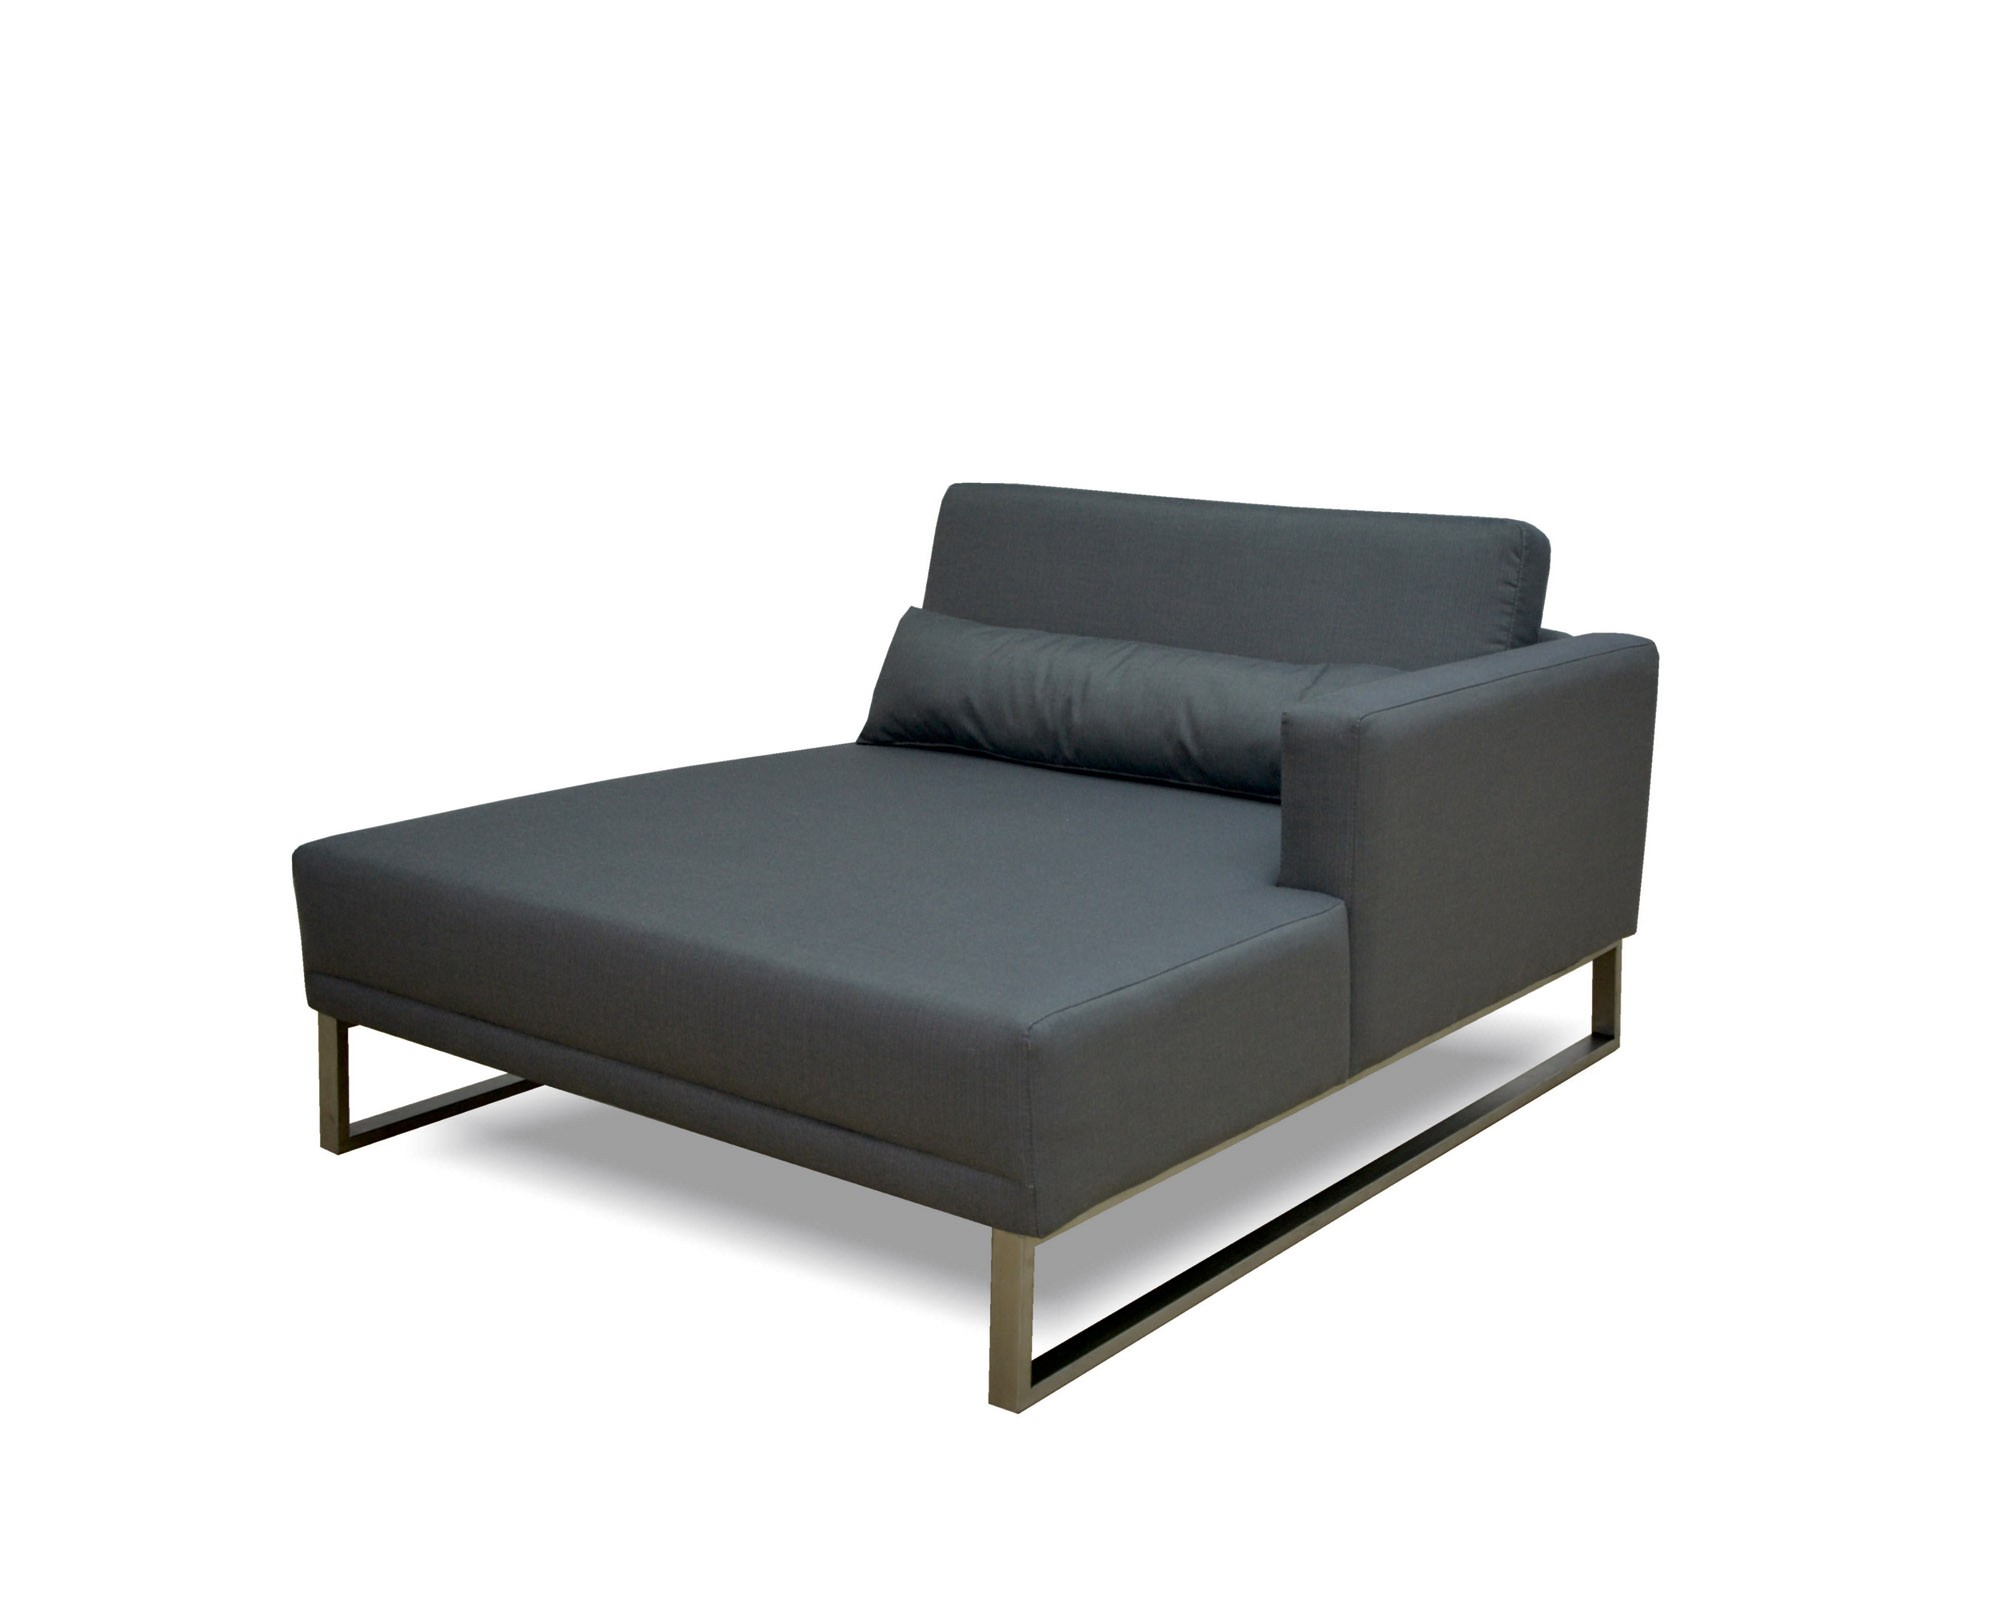 Balkon Couch Sofa Balkon Gallery Of Hausdesign Bank Balkon Loungebank